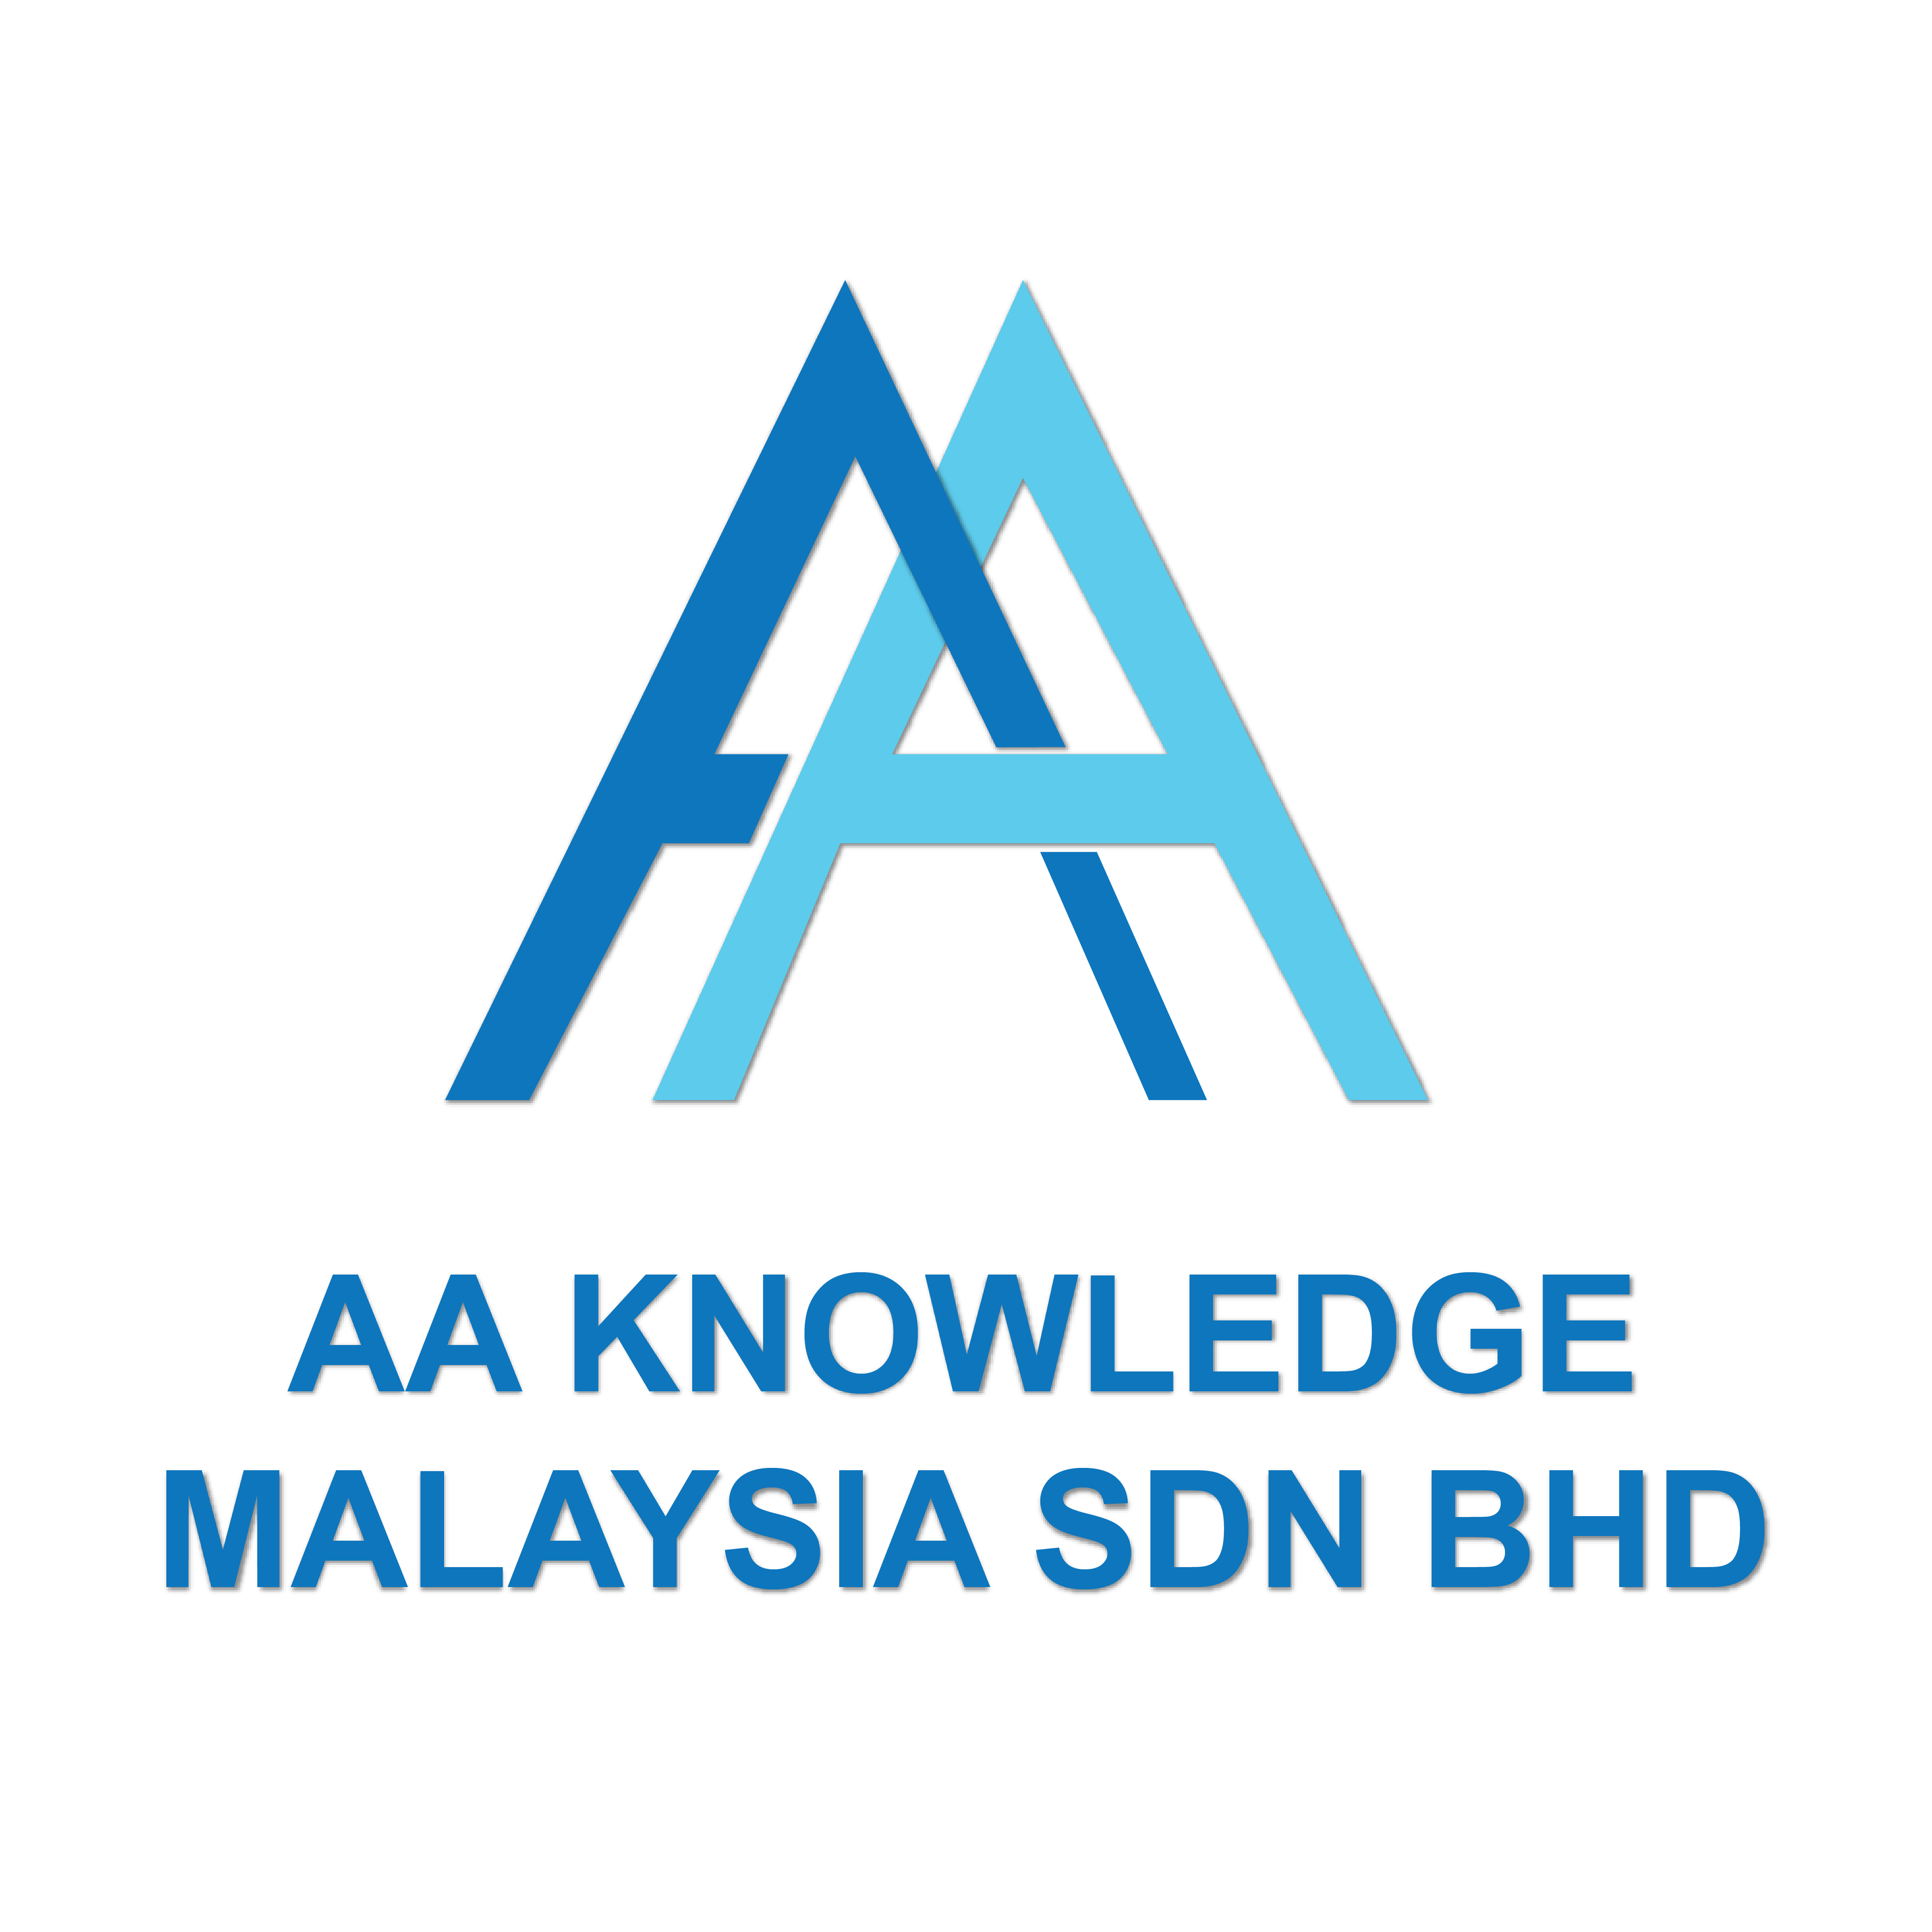 AA Knowledge